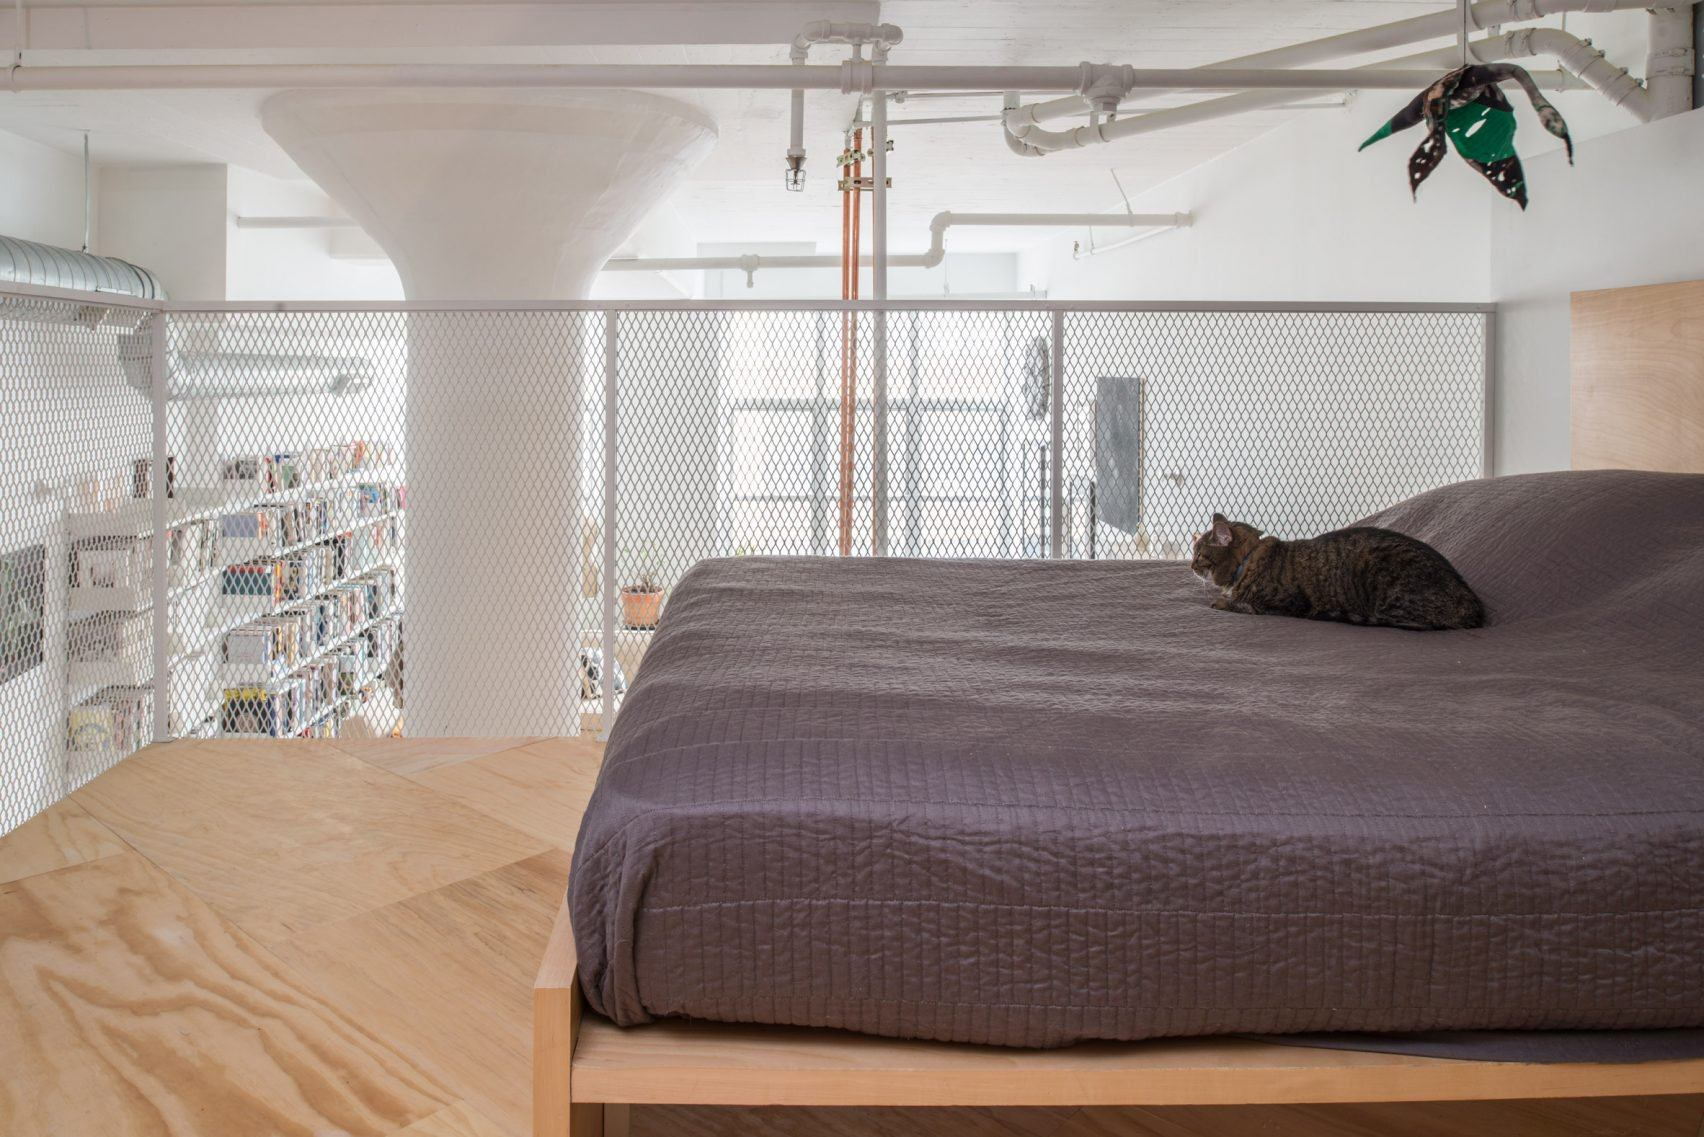 New Affiliates, Bed-Stuy, loft renovation, plywood